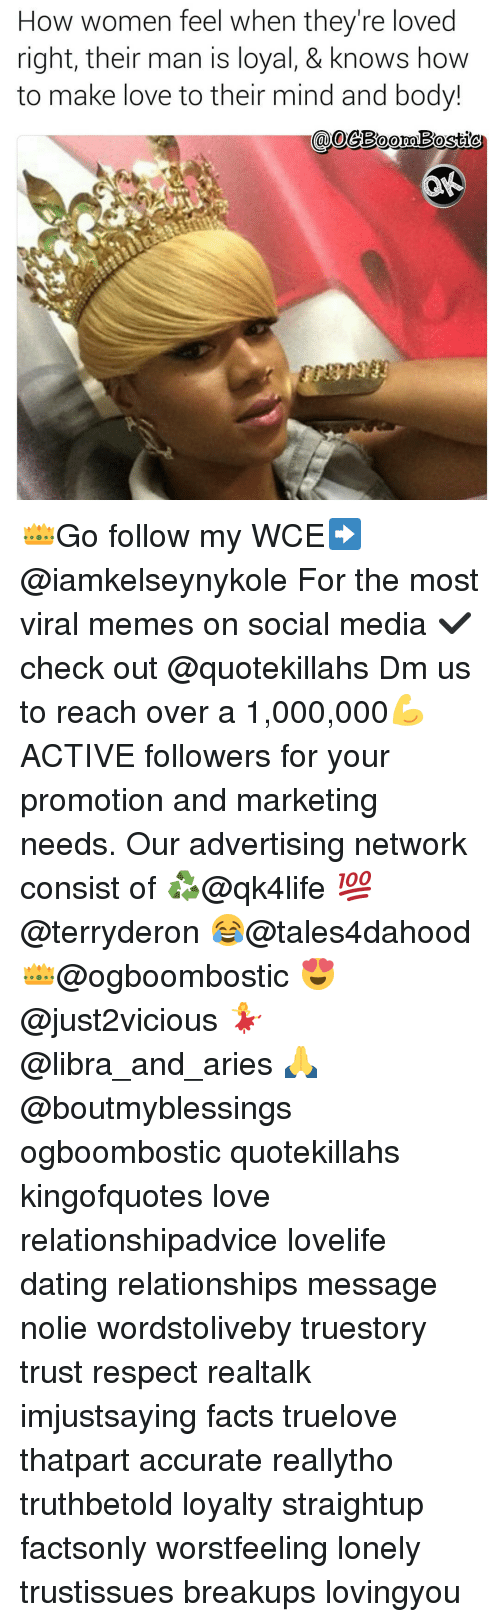 Memes, 🤖, and Making Love: How women feel when they're loved  right, their man is loyal, & knows how  to make love to their mind and body! 👑Go follow my WCE➡@iamkelseynykole For the most viral memes on social media ✔check out @quotekillahs Dm us to reach over a 1,000,000💪ACTIVE followers for your promotion and marketing needs. Our advertising network consist of ♻@qk4life 💯@terryderon 😂@tales4dahood 👑@ogboombostic 😍@just2vicious 💃@libra_and_aries 🙏@boutmyblessings ogboombostic quotekillahs kingofquotes love relationshipadvice lovelife dating relationships message nolie wordstoliveby truestory trust respect realtalk imjustsaying facts truelove thatpart accurate reallytho truthbetold loyalty straightup factsonly worstfeeling lonely trustissues breakups lovingyou